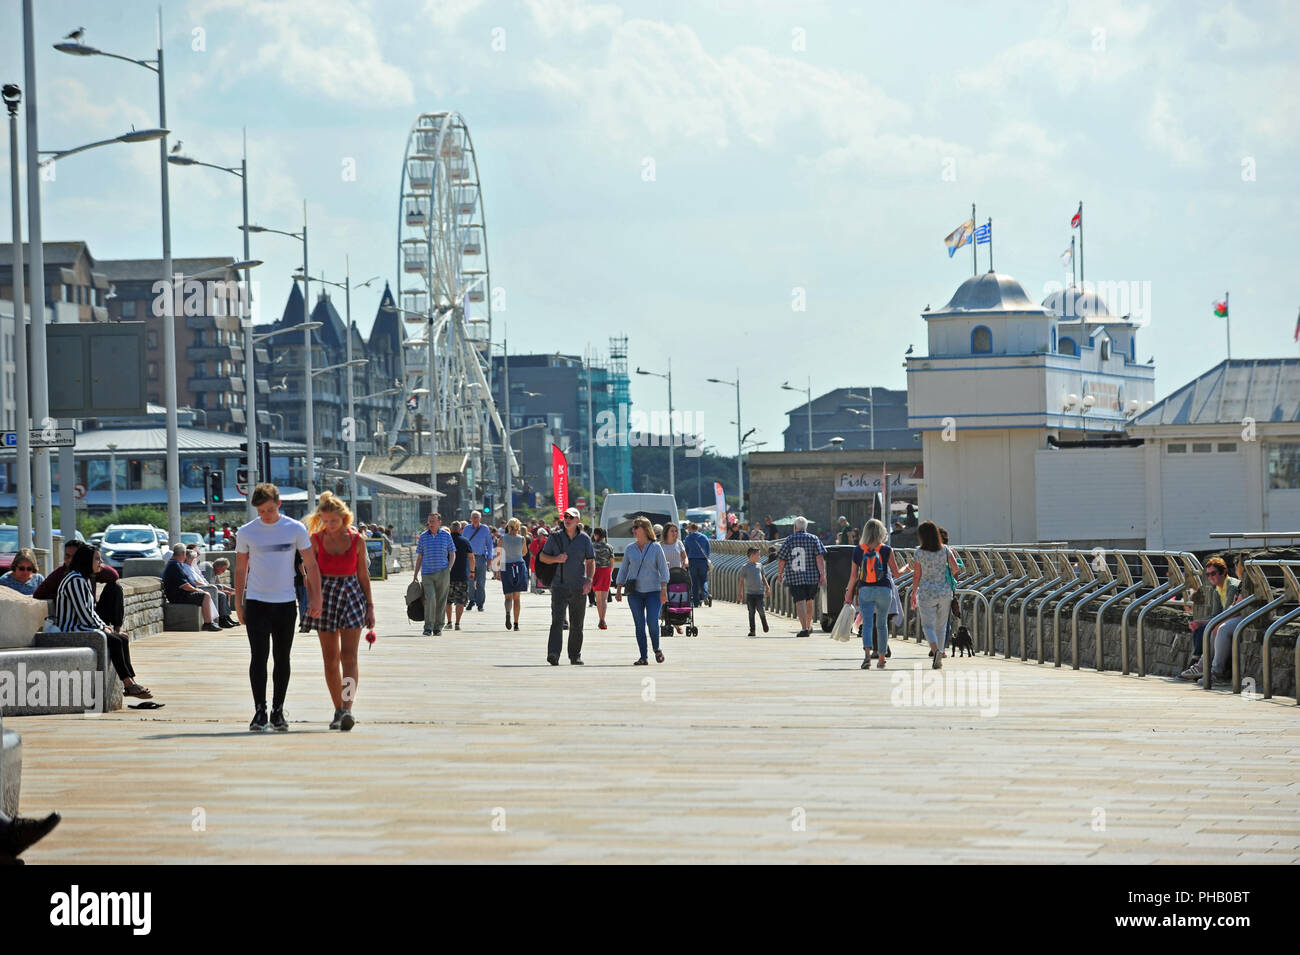 UK Weather. Record numbers of Visitors to Weston Super Mare up due to the Hot Weather this year. Pictures show this afternoon friday the 31st last day of August people enjoying the very hot summers sun , beach relaxing, children on the world famous Donkey rides and walking along the promenade front. Robert Timoney/Alamy/live/News Stock Photo